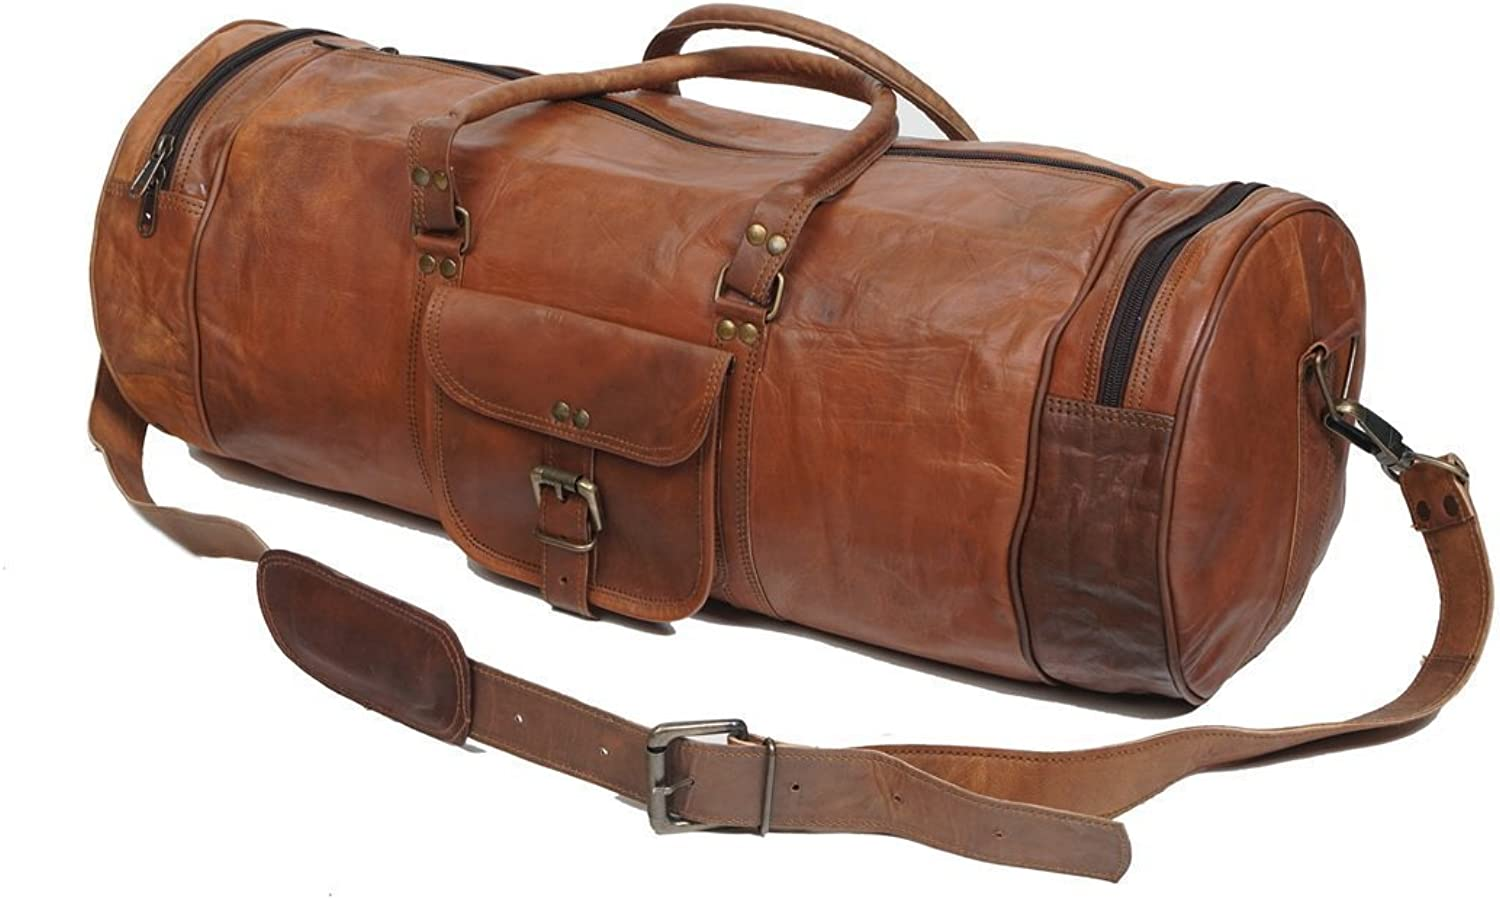 LeatherCrafts 26  Leather Duffle Travel Overnight Gym Bag Weekend Bag Big Brown (26 Inch)